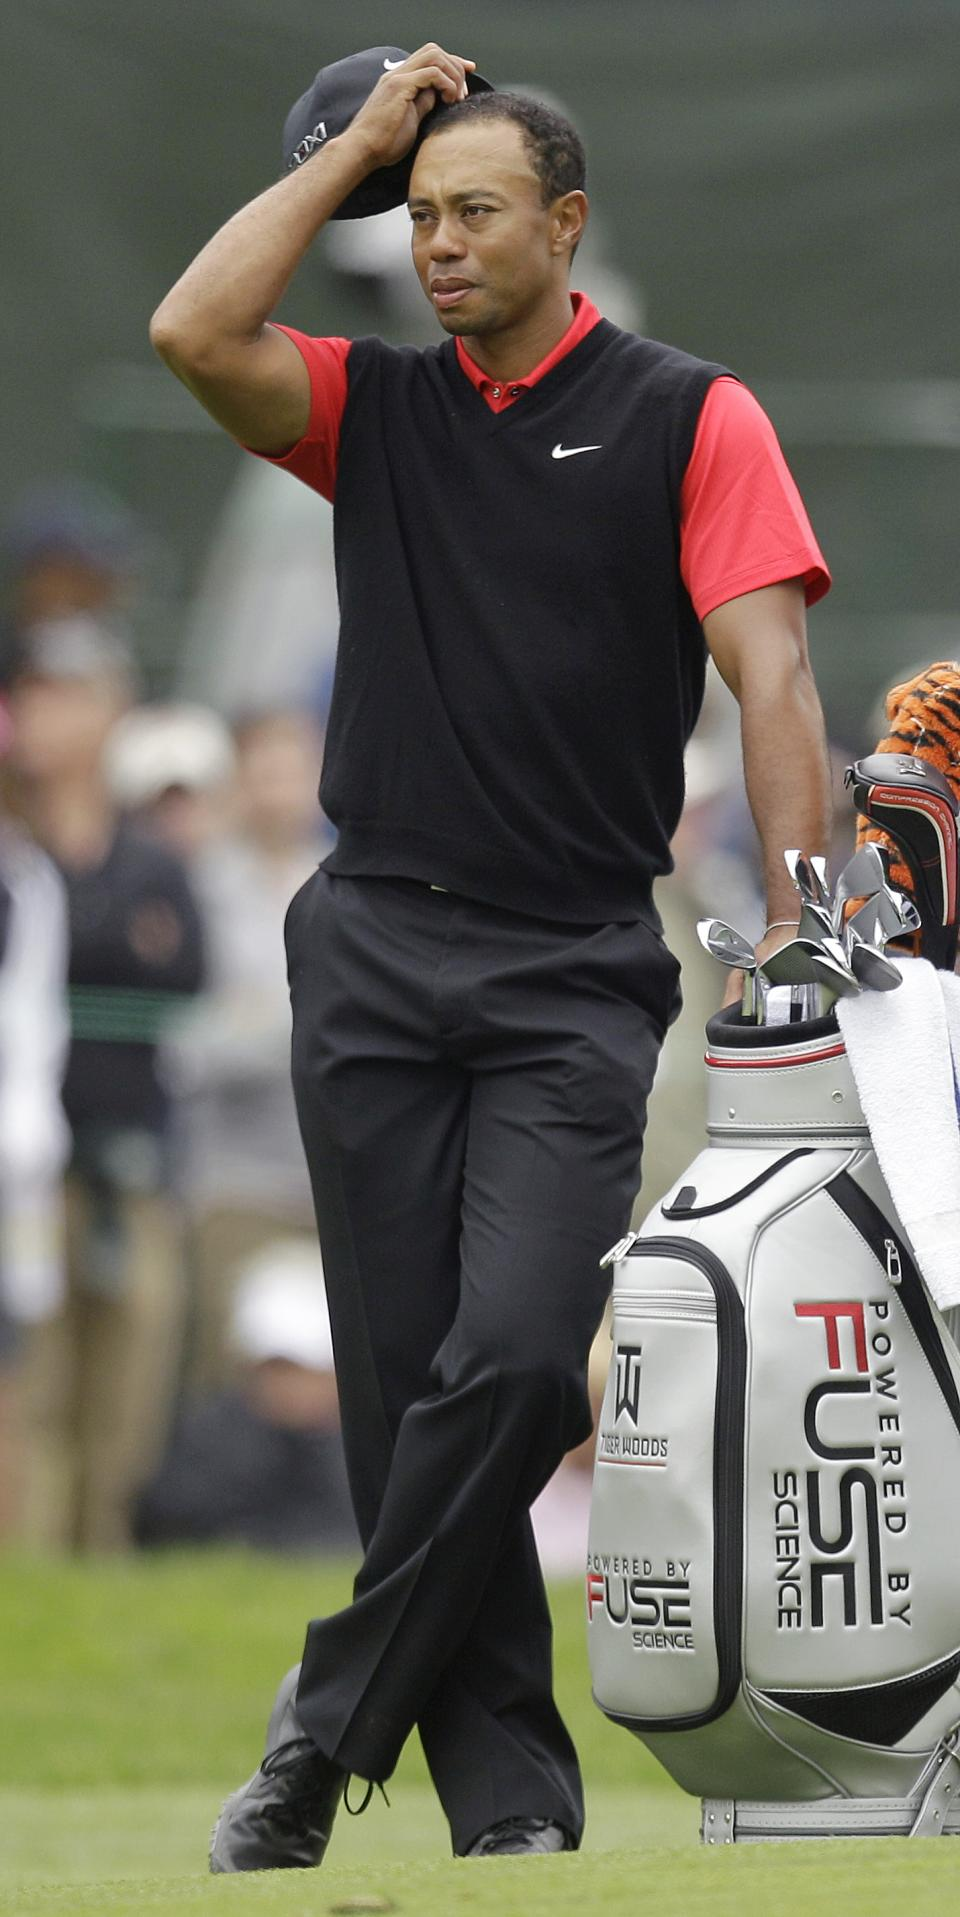 Tiger Woods waits to hit on the sixth hole during the fourth round of the U.S. Open Championship golf tournament Sunday, June 17, 2012, at The Olympic Club in San Francisco. (AP Photo/Ben Margot)